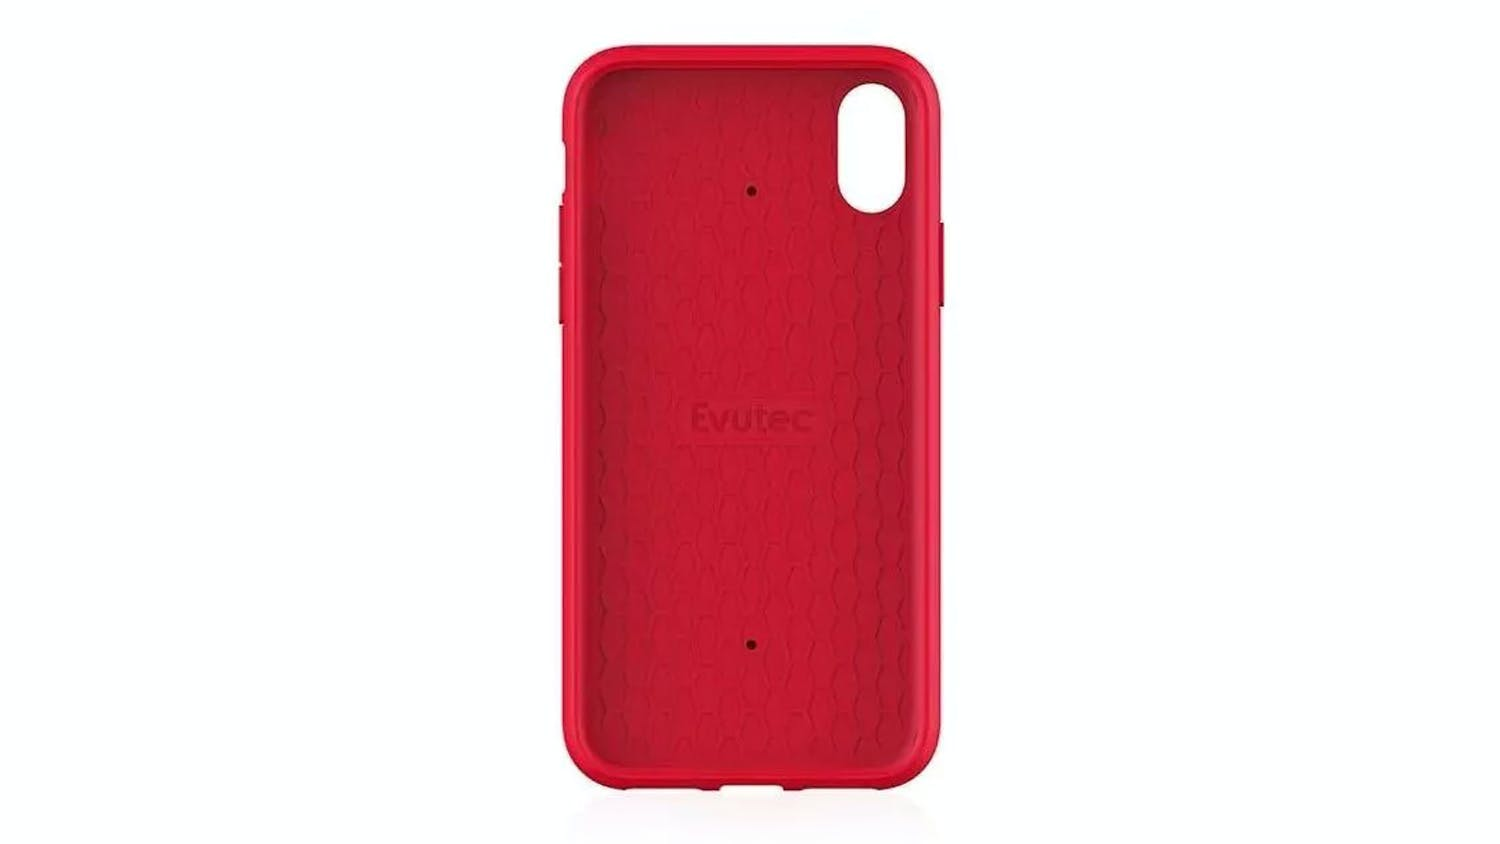 Evutec Aergo Ballistic Nylon Case for iPhone XS – Red